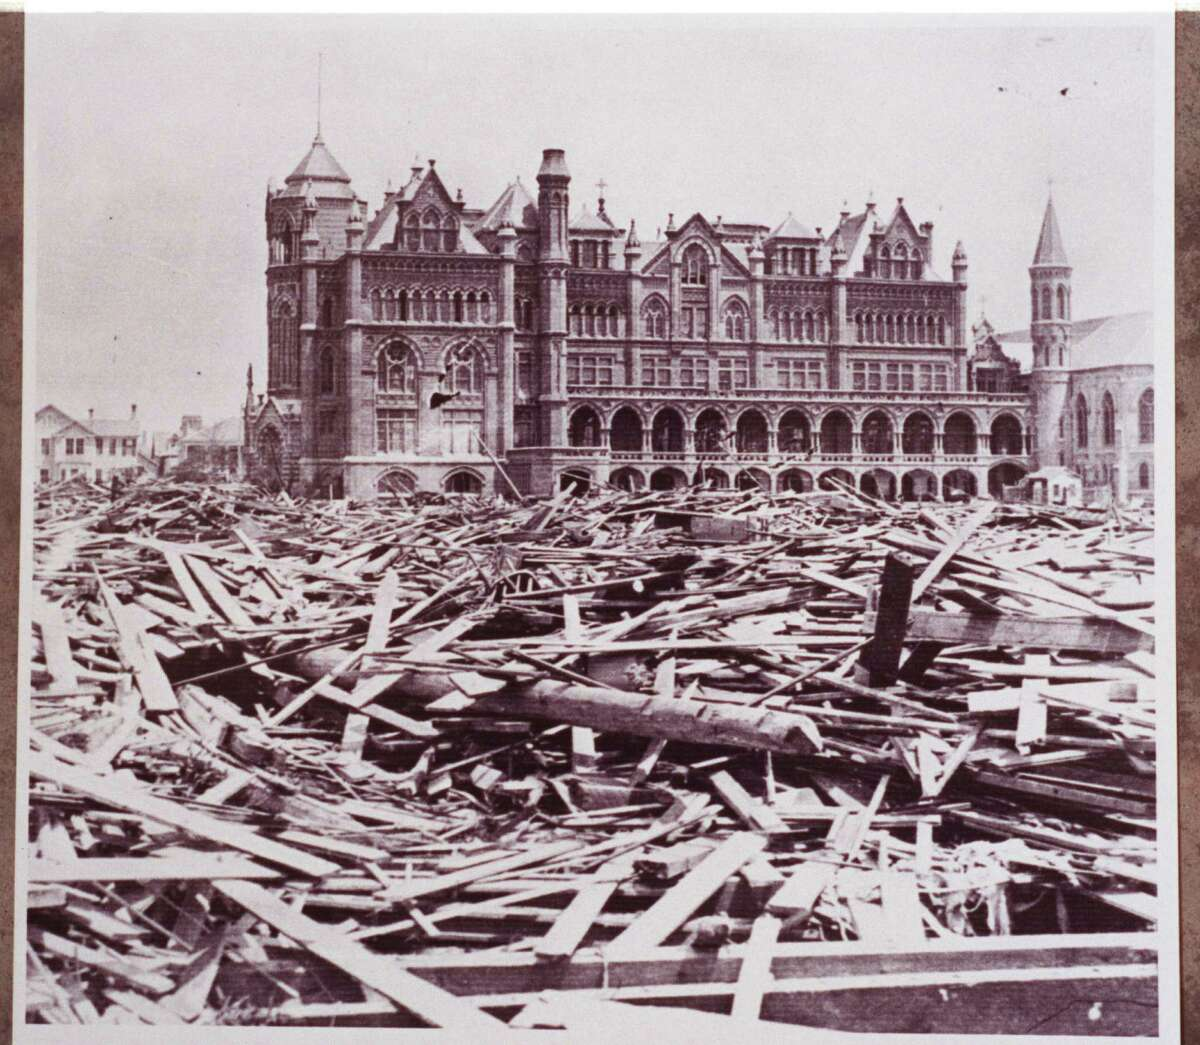 The Ursuline Academy shoqn surrounded with debris after the 1900 storm. The Ursline nuns are credited with saving over 1,500 people.